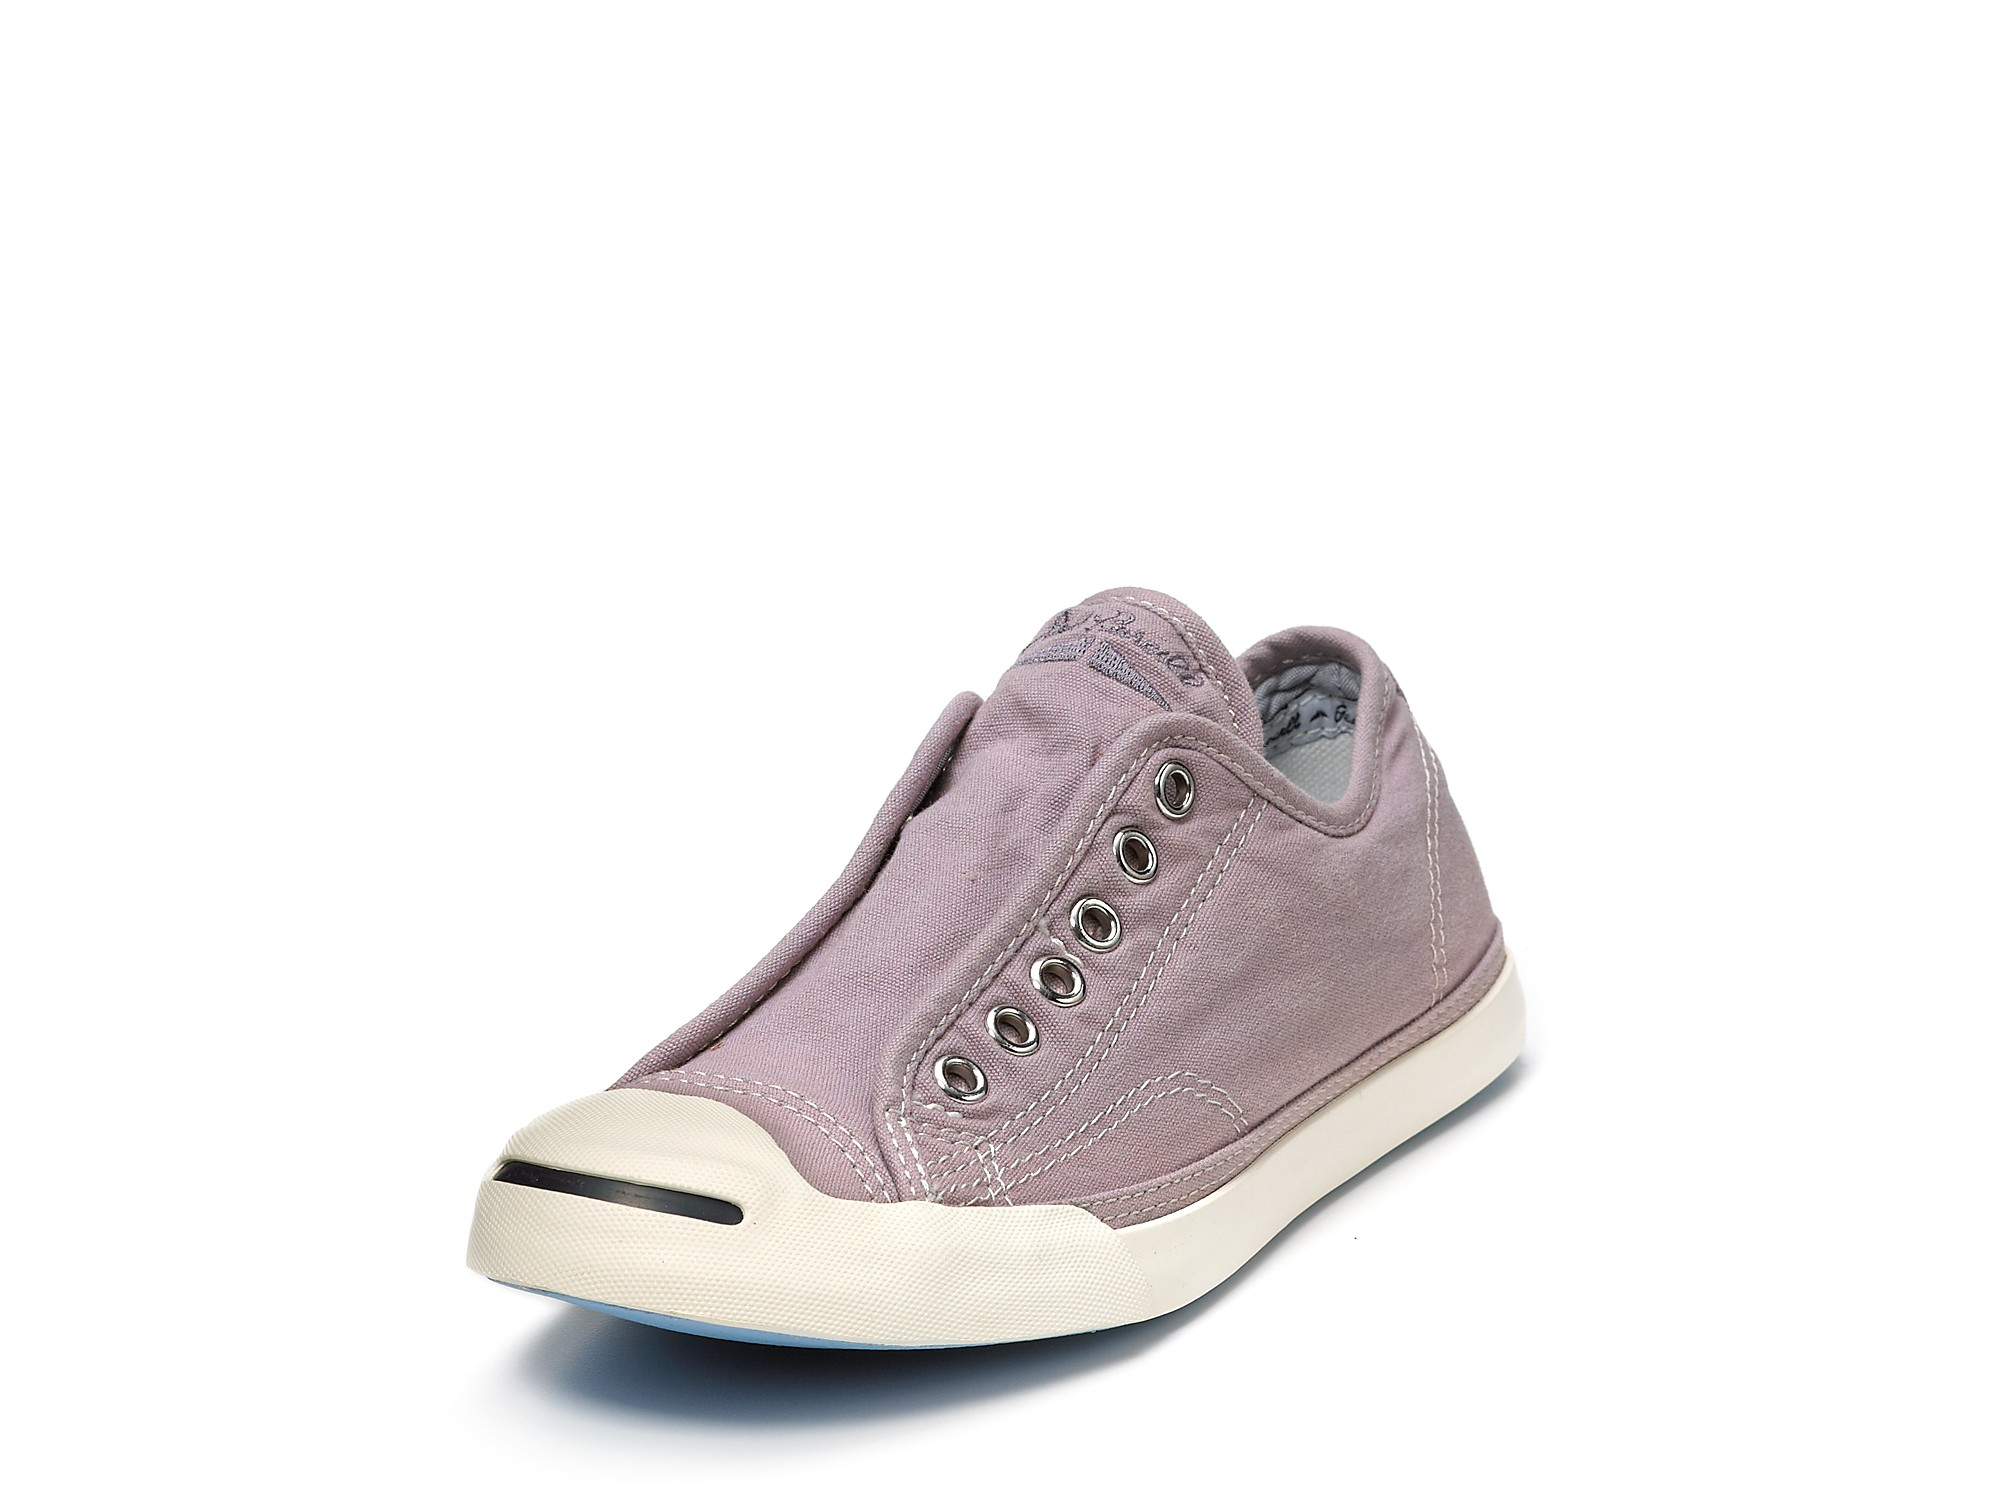 6a39c3bb9b9 Lyst - Converse Jack Purcell Slip-on Sneakers in Purple